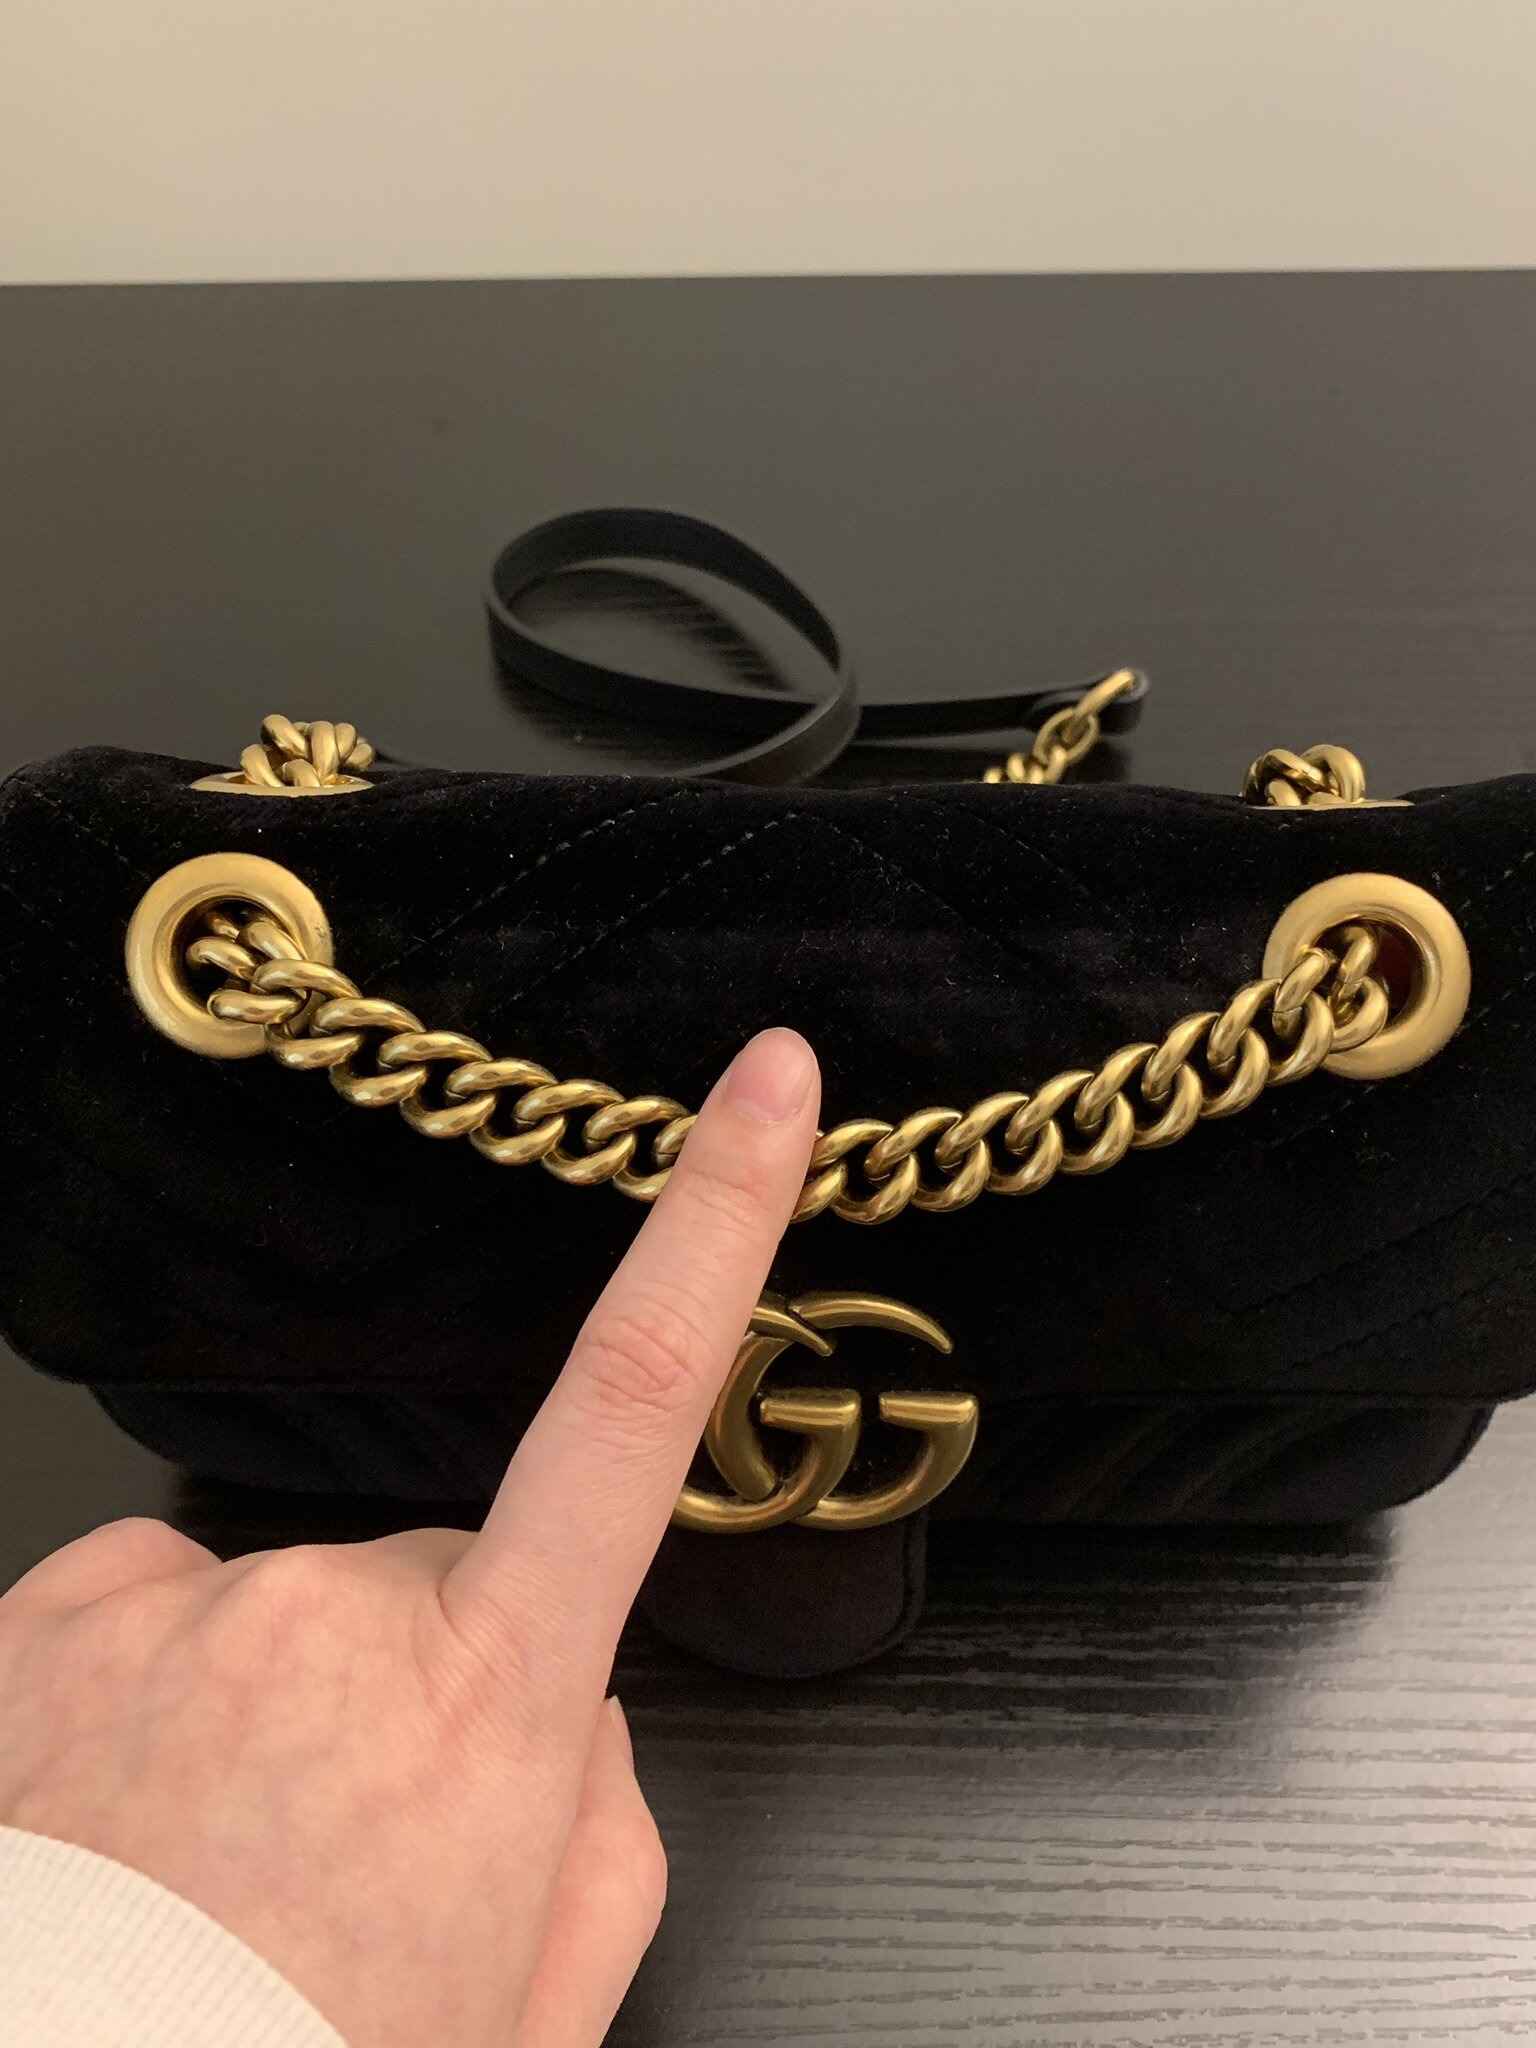 This part of the purse is where the most noticeable wear is. There is an indent on the velvet material due to the weight of the chain. This does not bother me because it is bound to happen with a velvet bag and when I wear my purse, it cannot be seen.